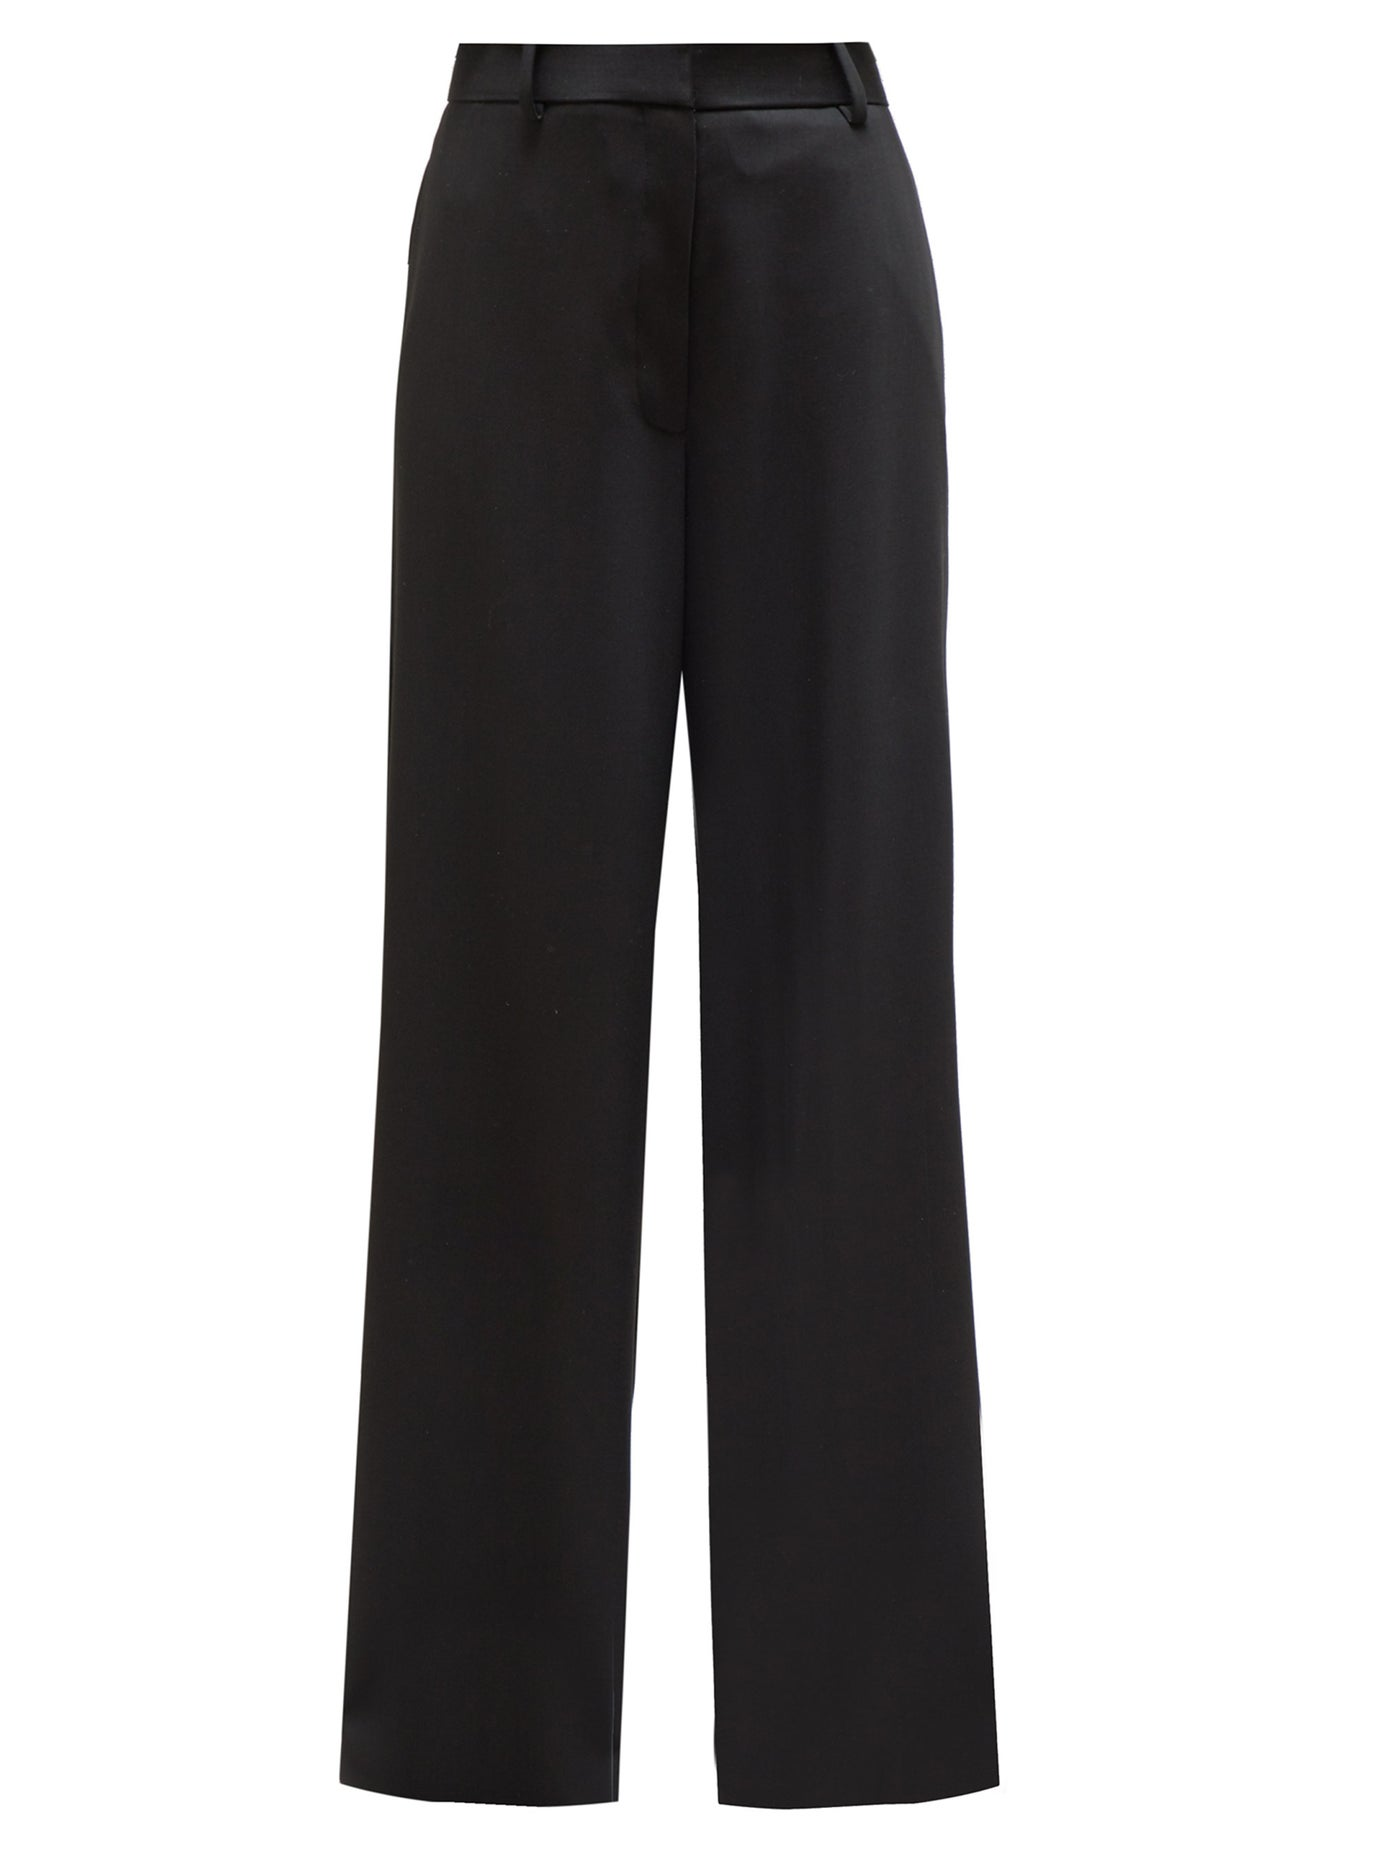 Gucci black wool-blend high-waisted tailored trousers